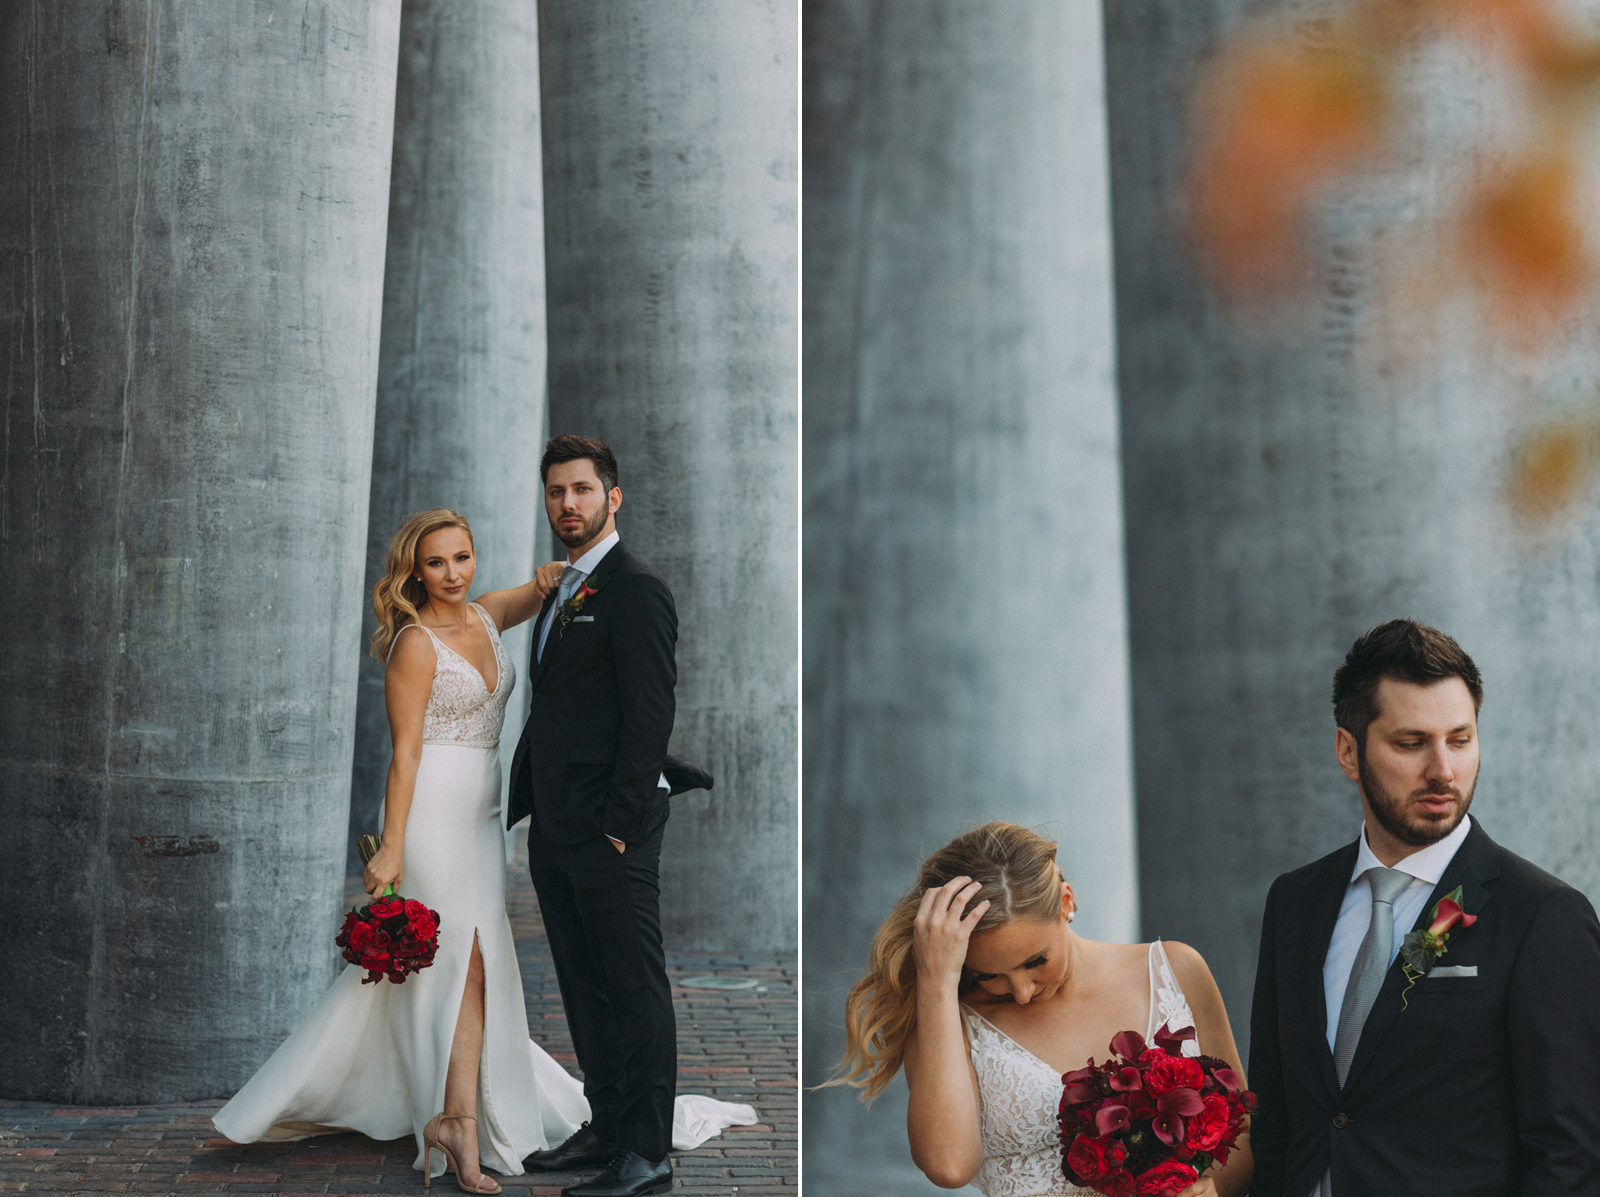 Thompson-Landry-Gallery-wedding-photos-Toronto-by-Sam-Wong-of-Artanis-Collective-Polina-Zarko_0028.jpg